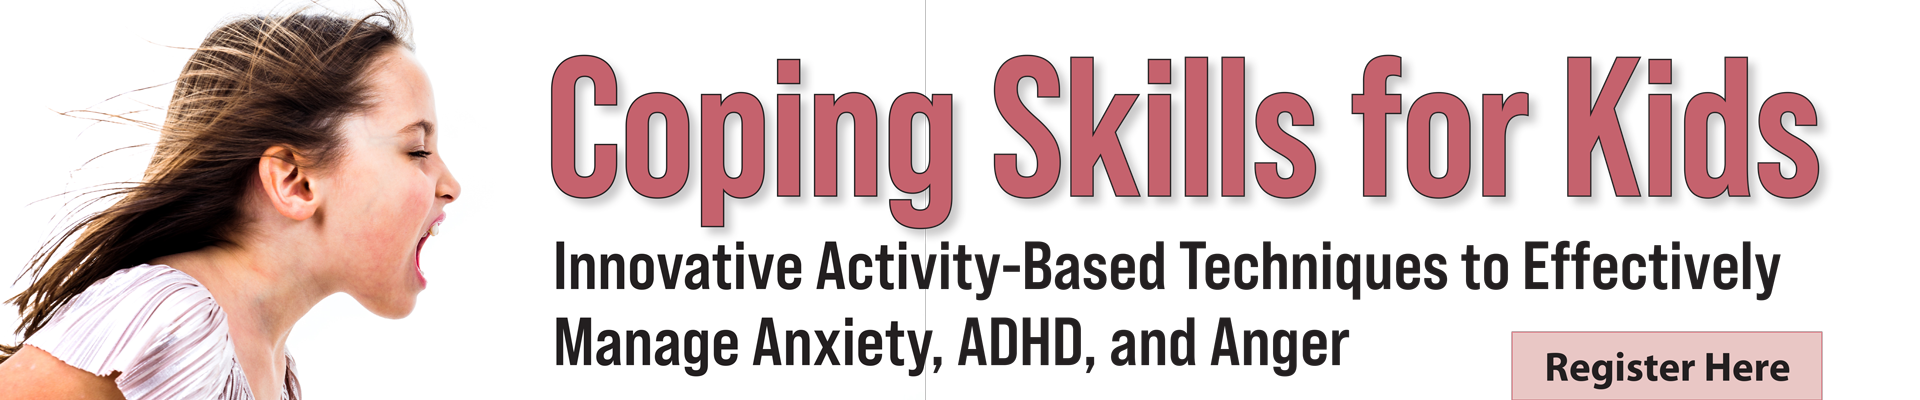 Coping Skills for Kids: Innovative Activity-Based Techniques to Effectively Manage Anxiety, ADHD, and Anger